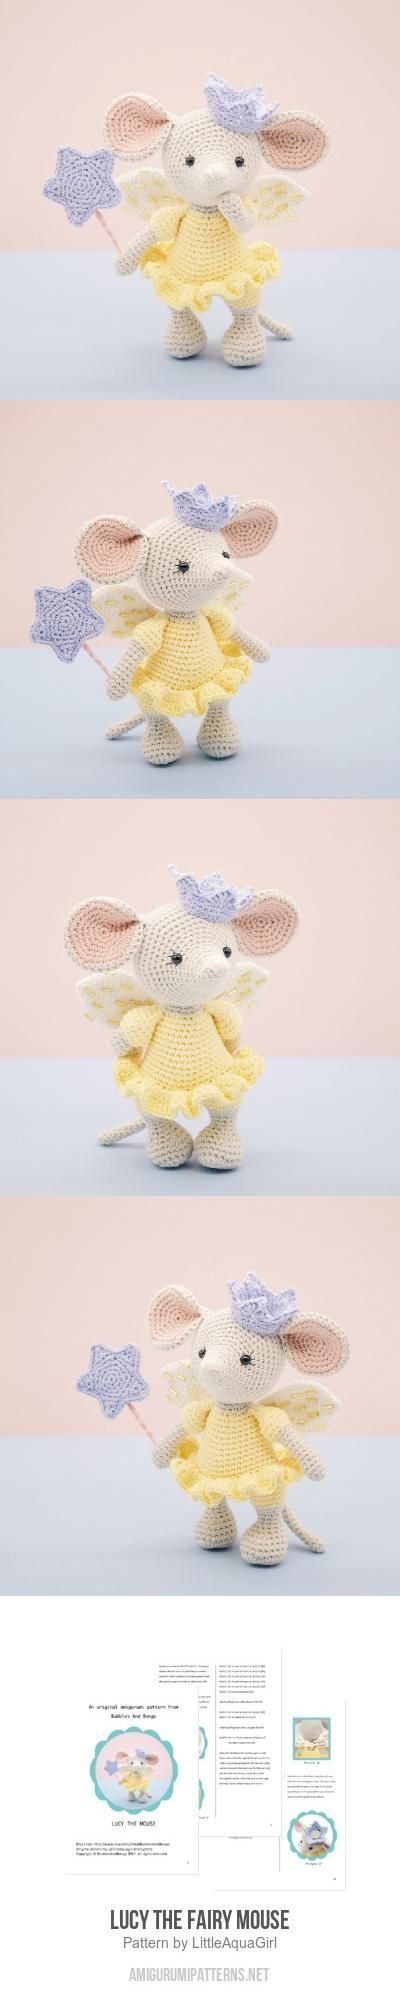 Lucy The Fairy Mouse Amigurumi Pattern